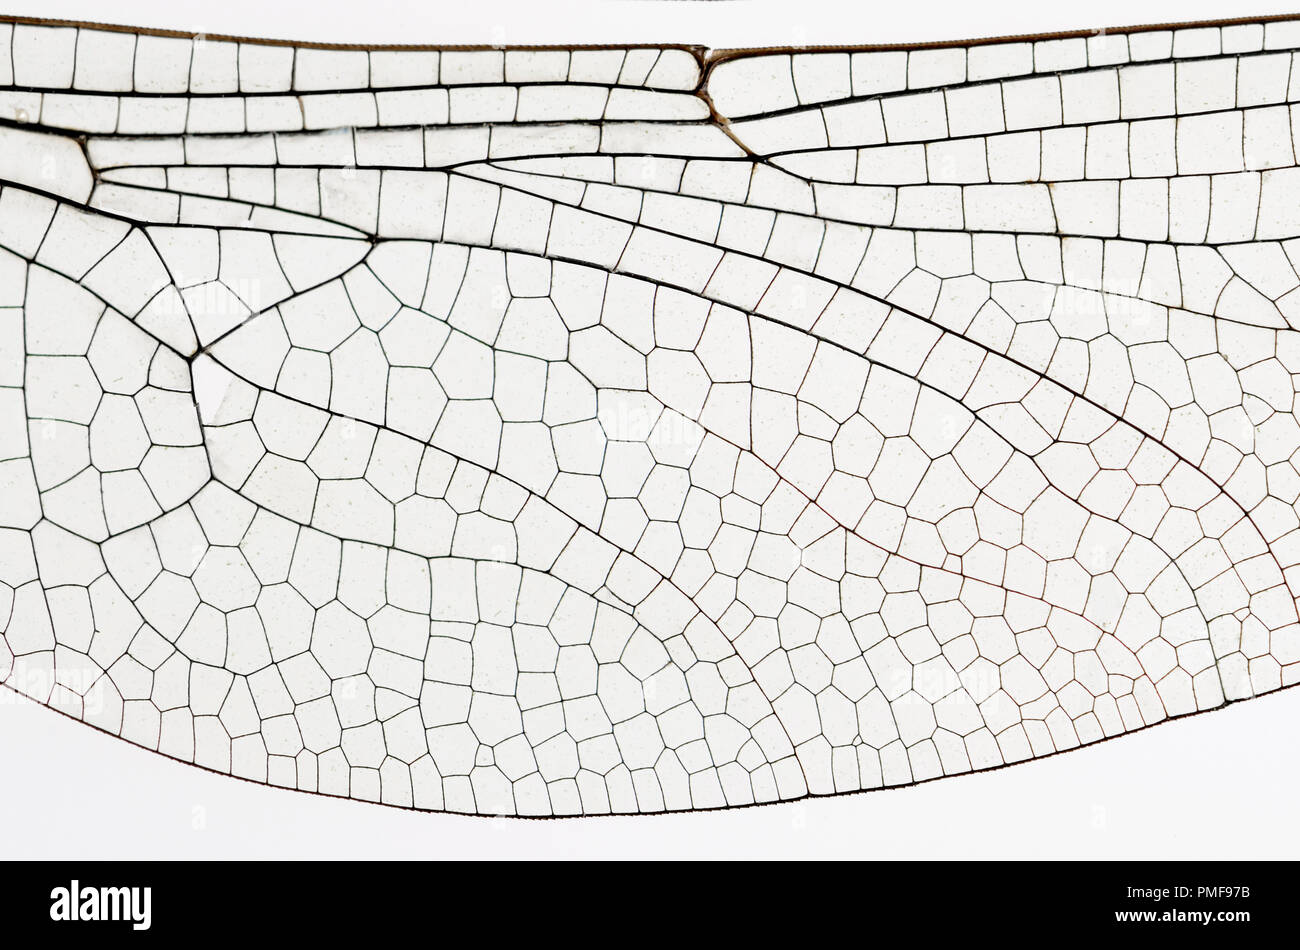 Wing of the Common Darter Dragonfly (Sympetrum striolatum) from a dead specimen. Showing veins and transparent cells - Stock Image